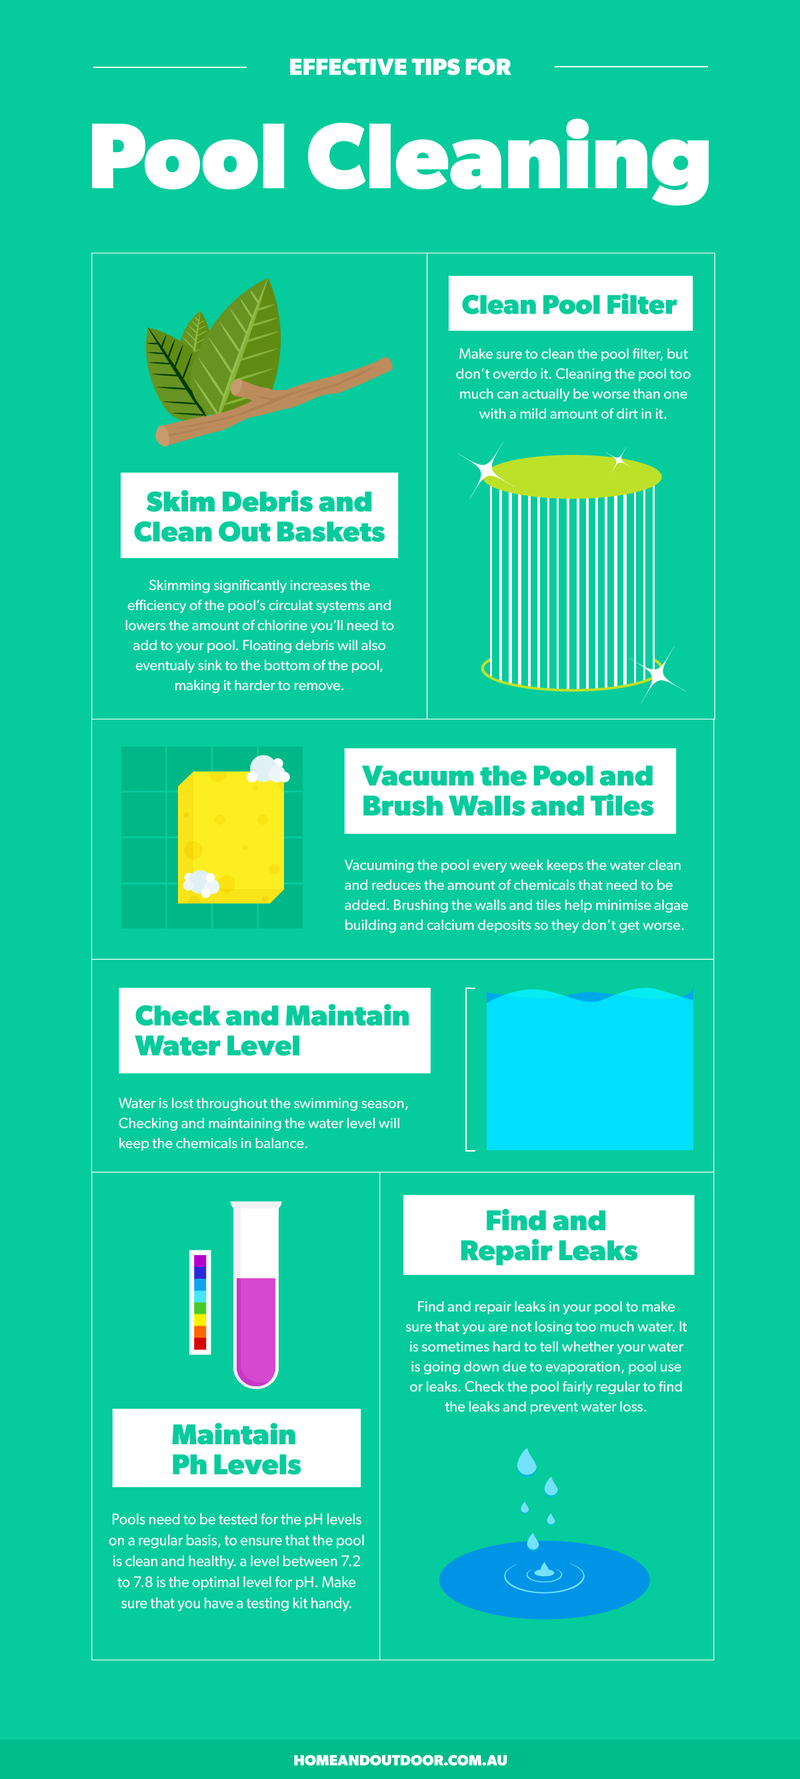 Pool Cleaning Tips pool swimming swim clean water sunshine summer warm fun  splash